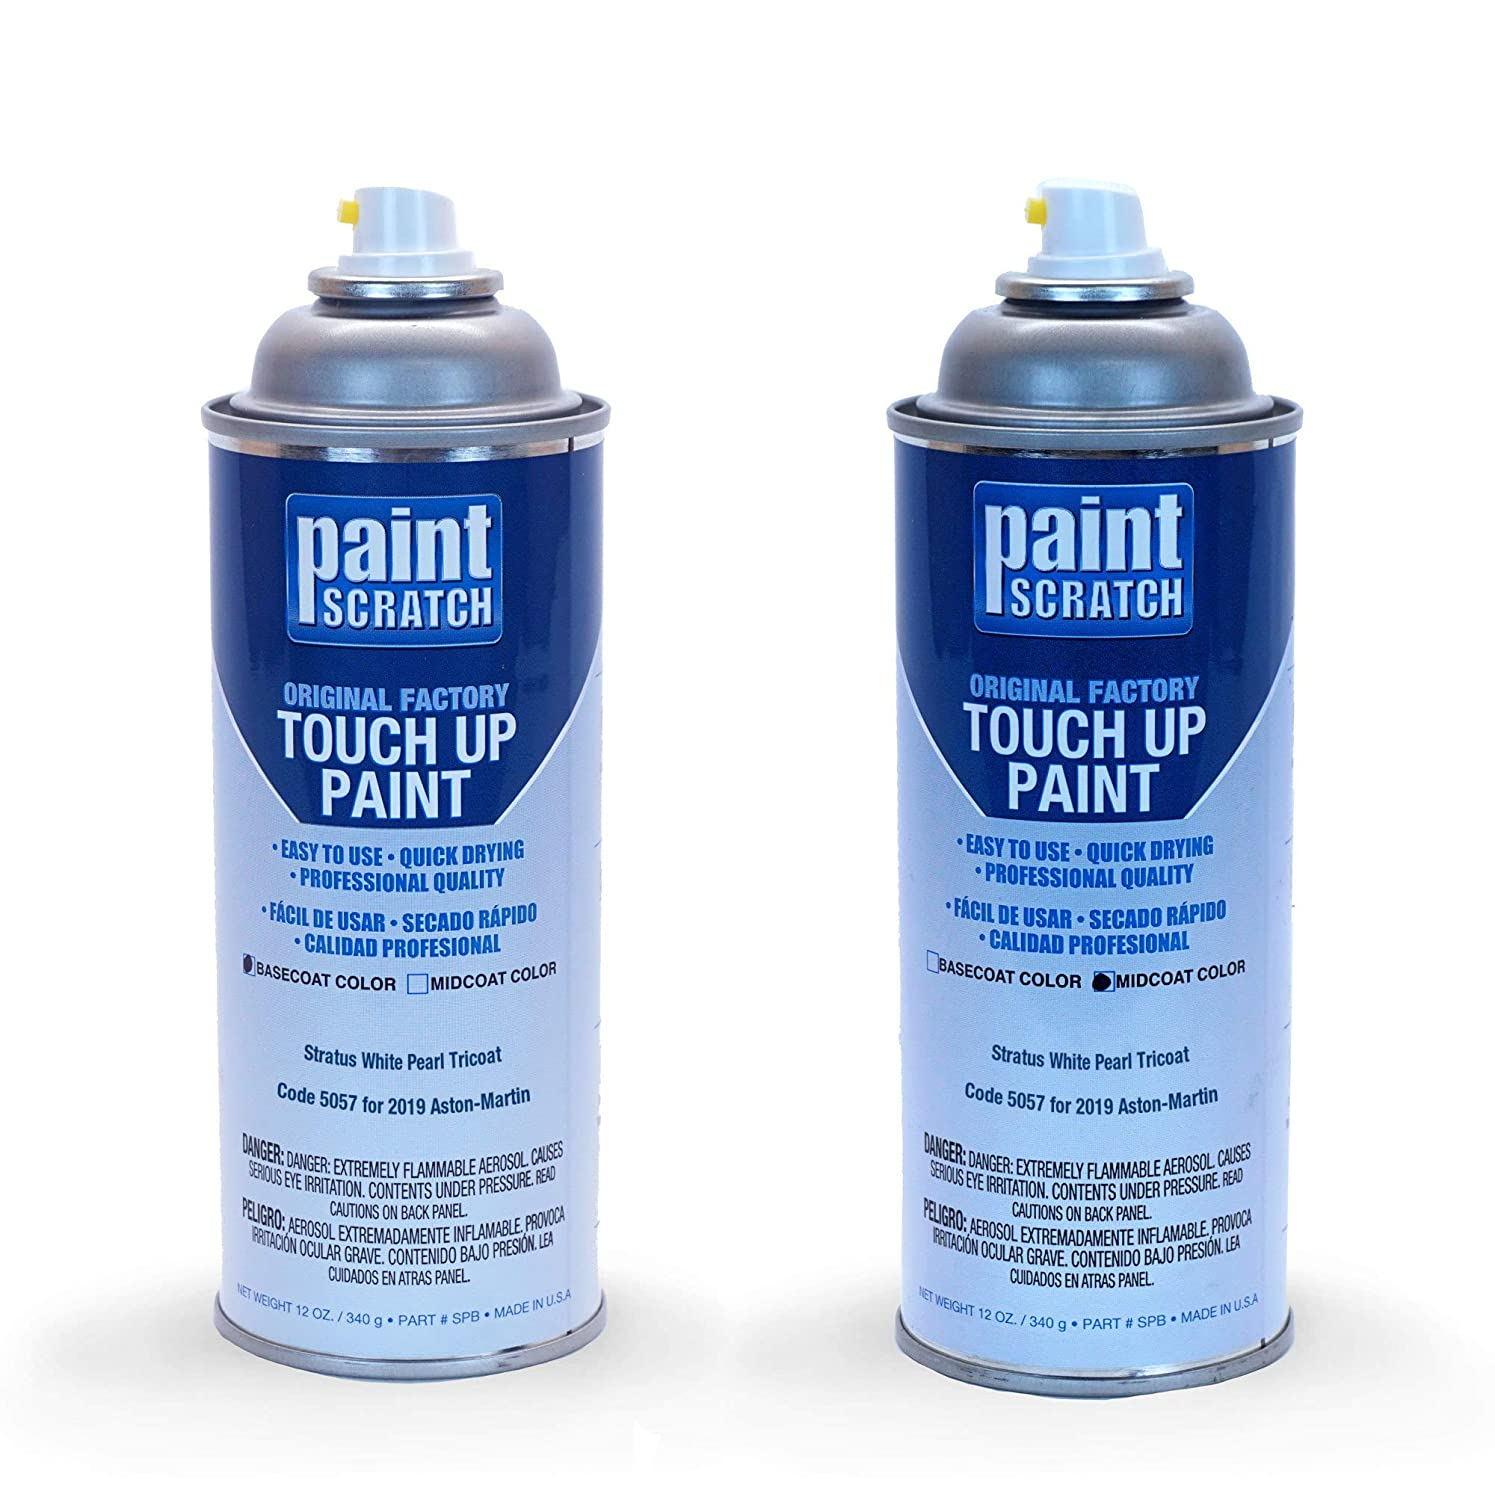 Amazon.com: PAINTSCRATCH Magnetic Silver P6005ABB for 2019 Aston-Martin All Models - Touch Up Paint Spray Can Kit - Original Factory OEM Automotive Paint ...